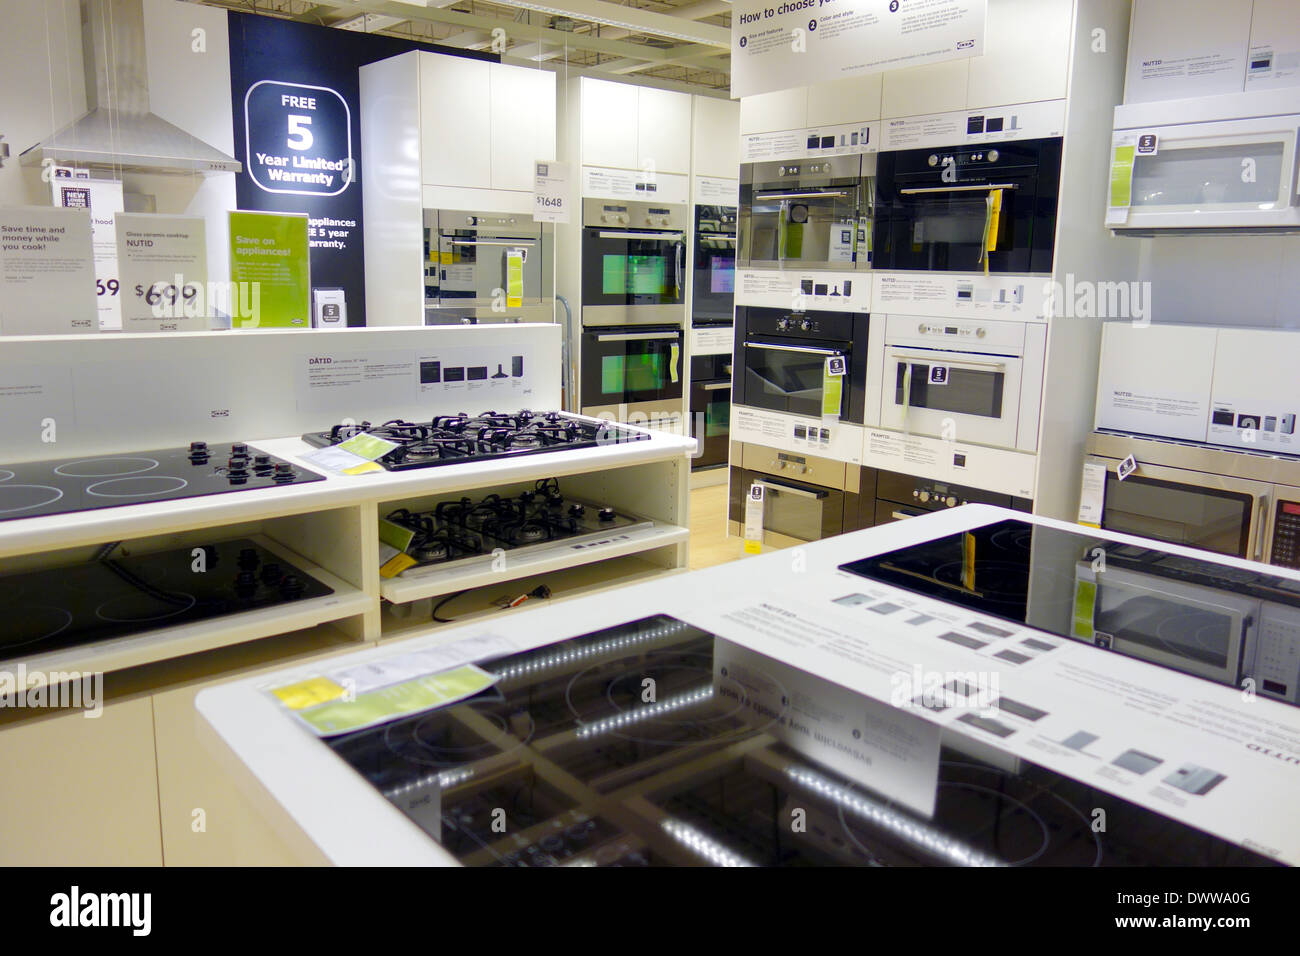 kitchen appliances at an ikea store in toronto, canada stock photo